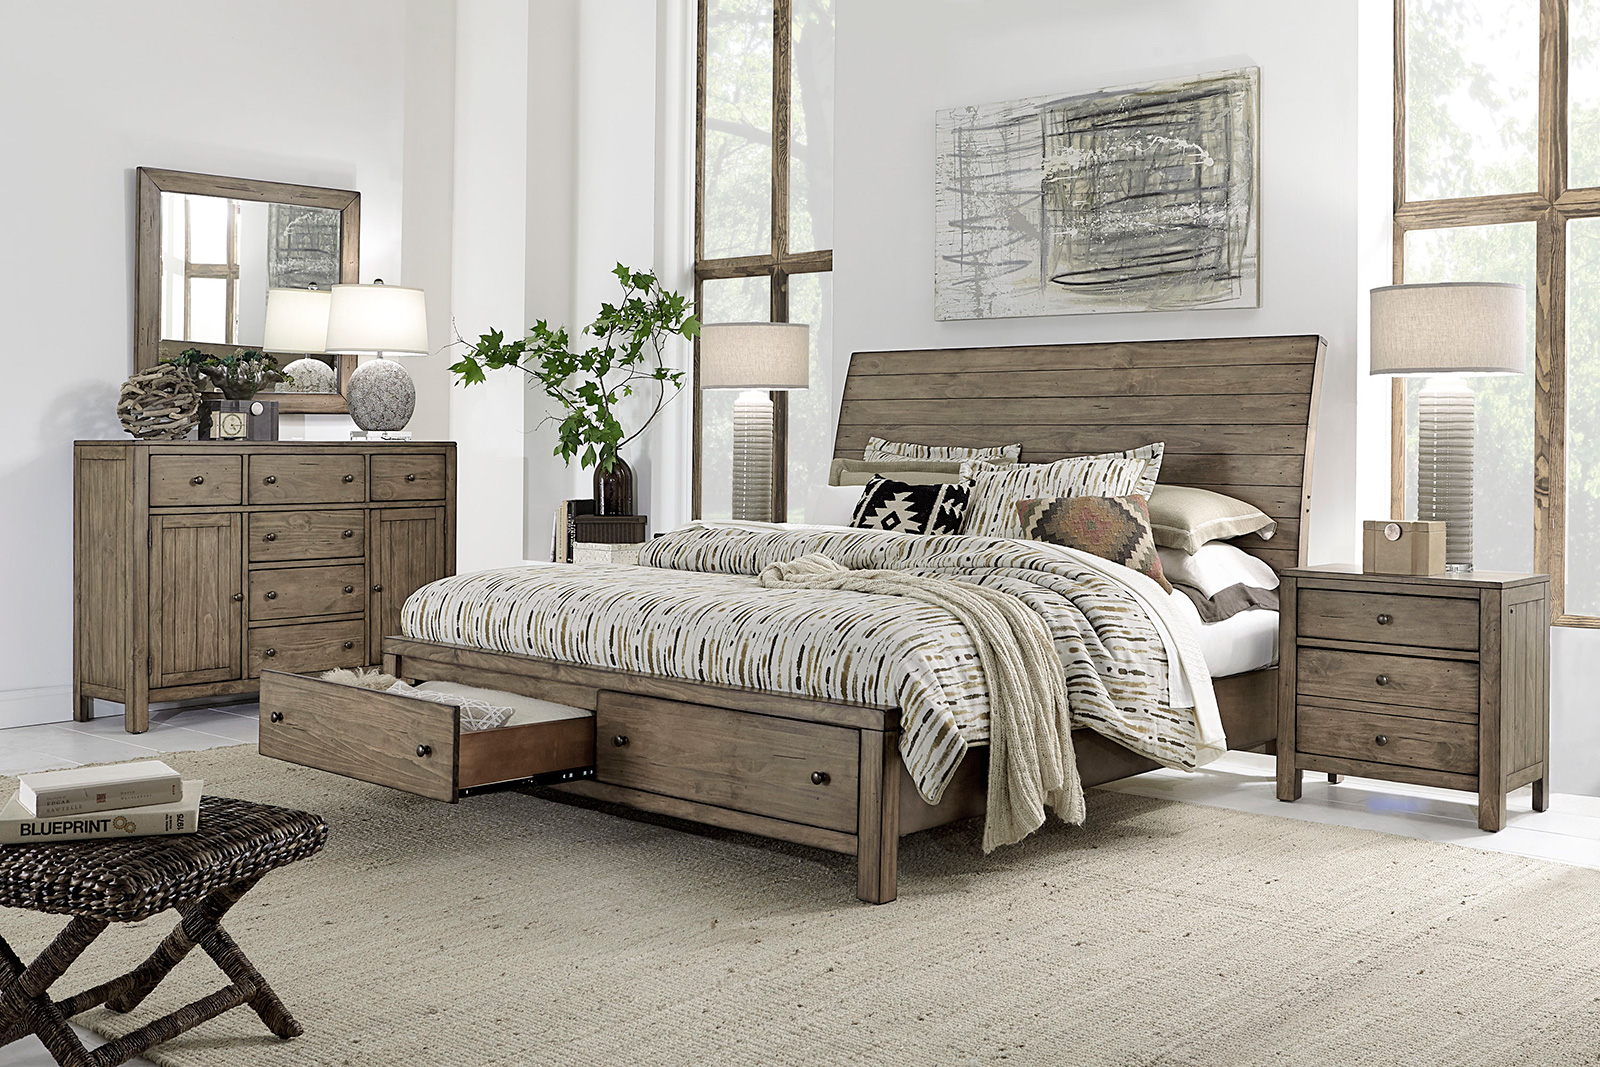 Aspenhome Aspenhome Tildon Sleigh Storage Bedroom Set in Mink I56 ...